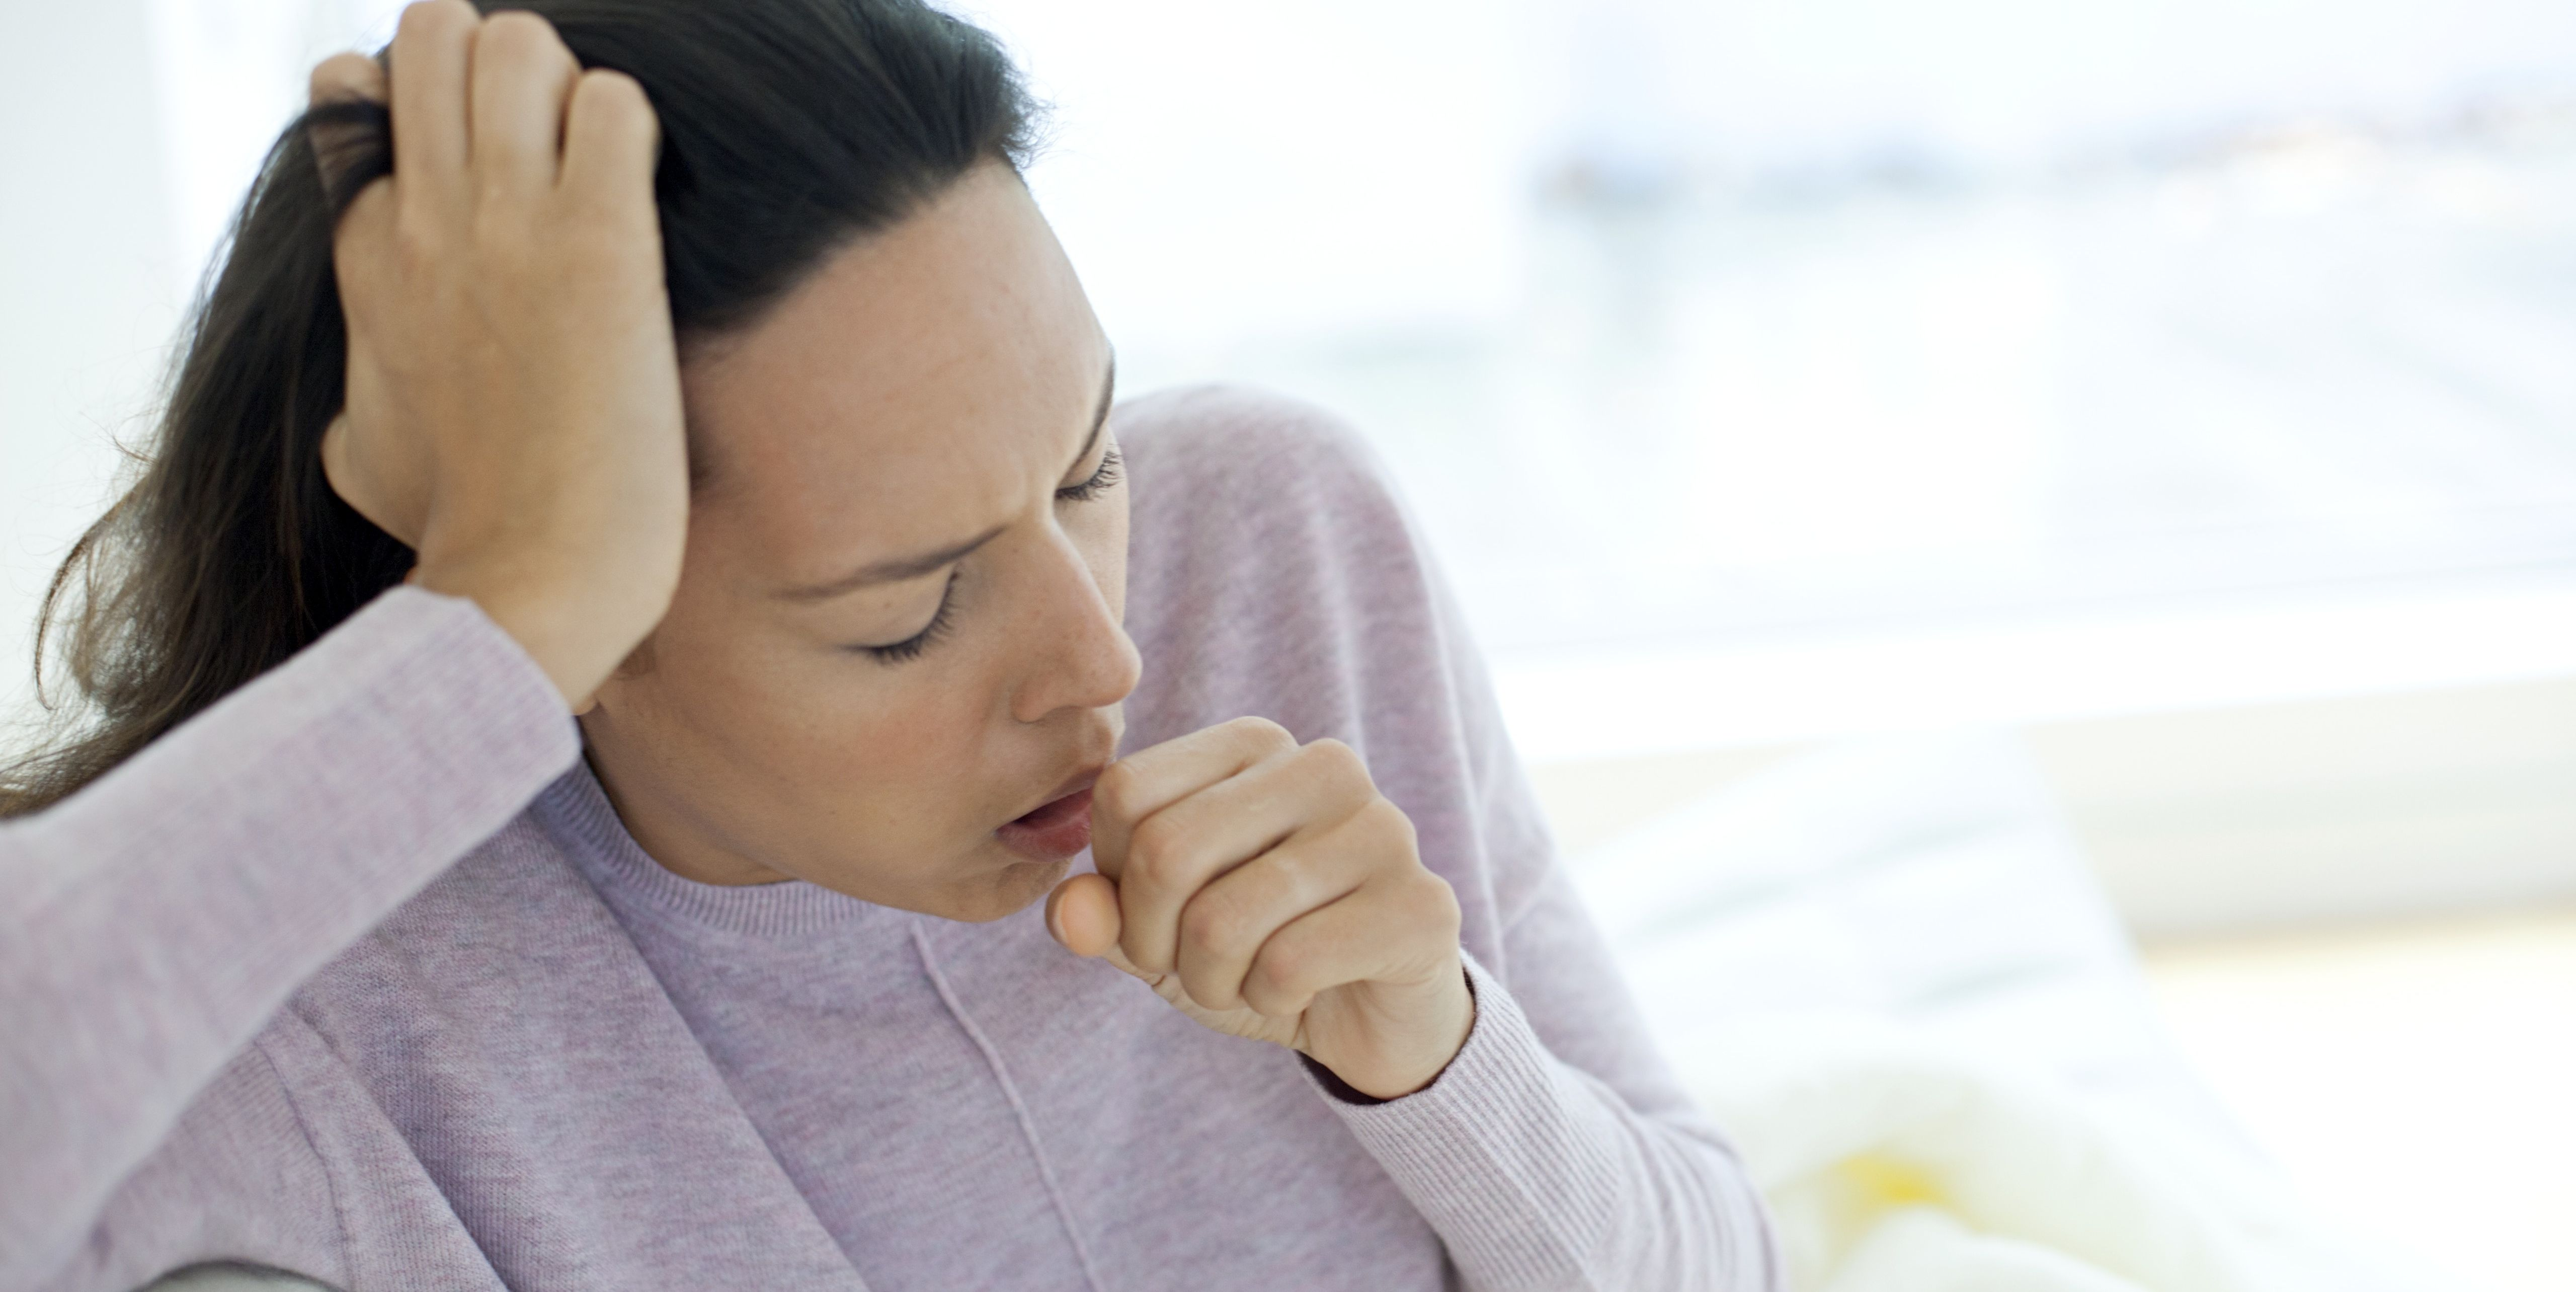 The 6 Best Home Remedies for a Cough